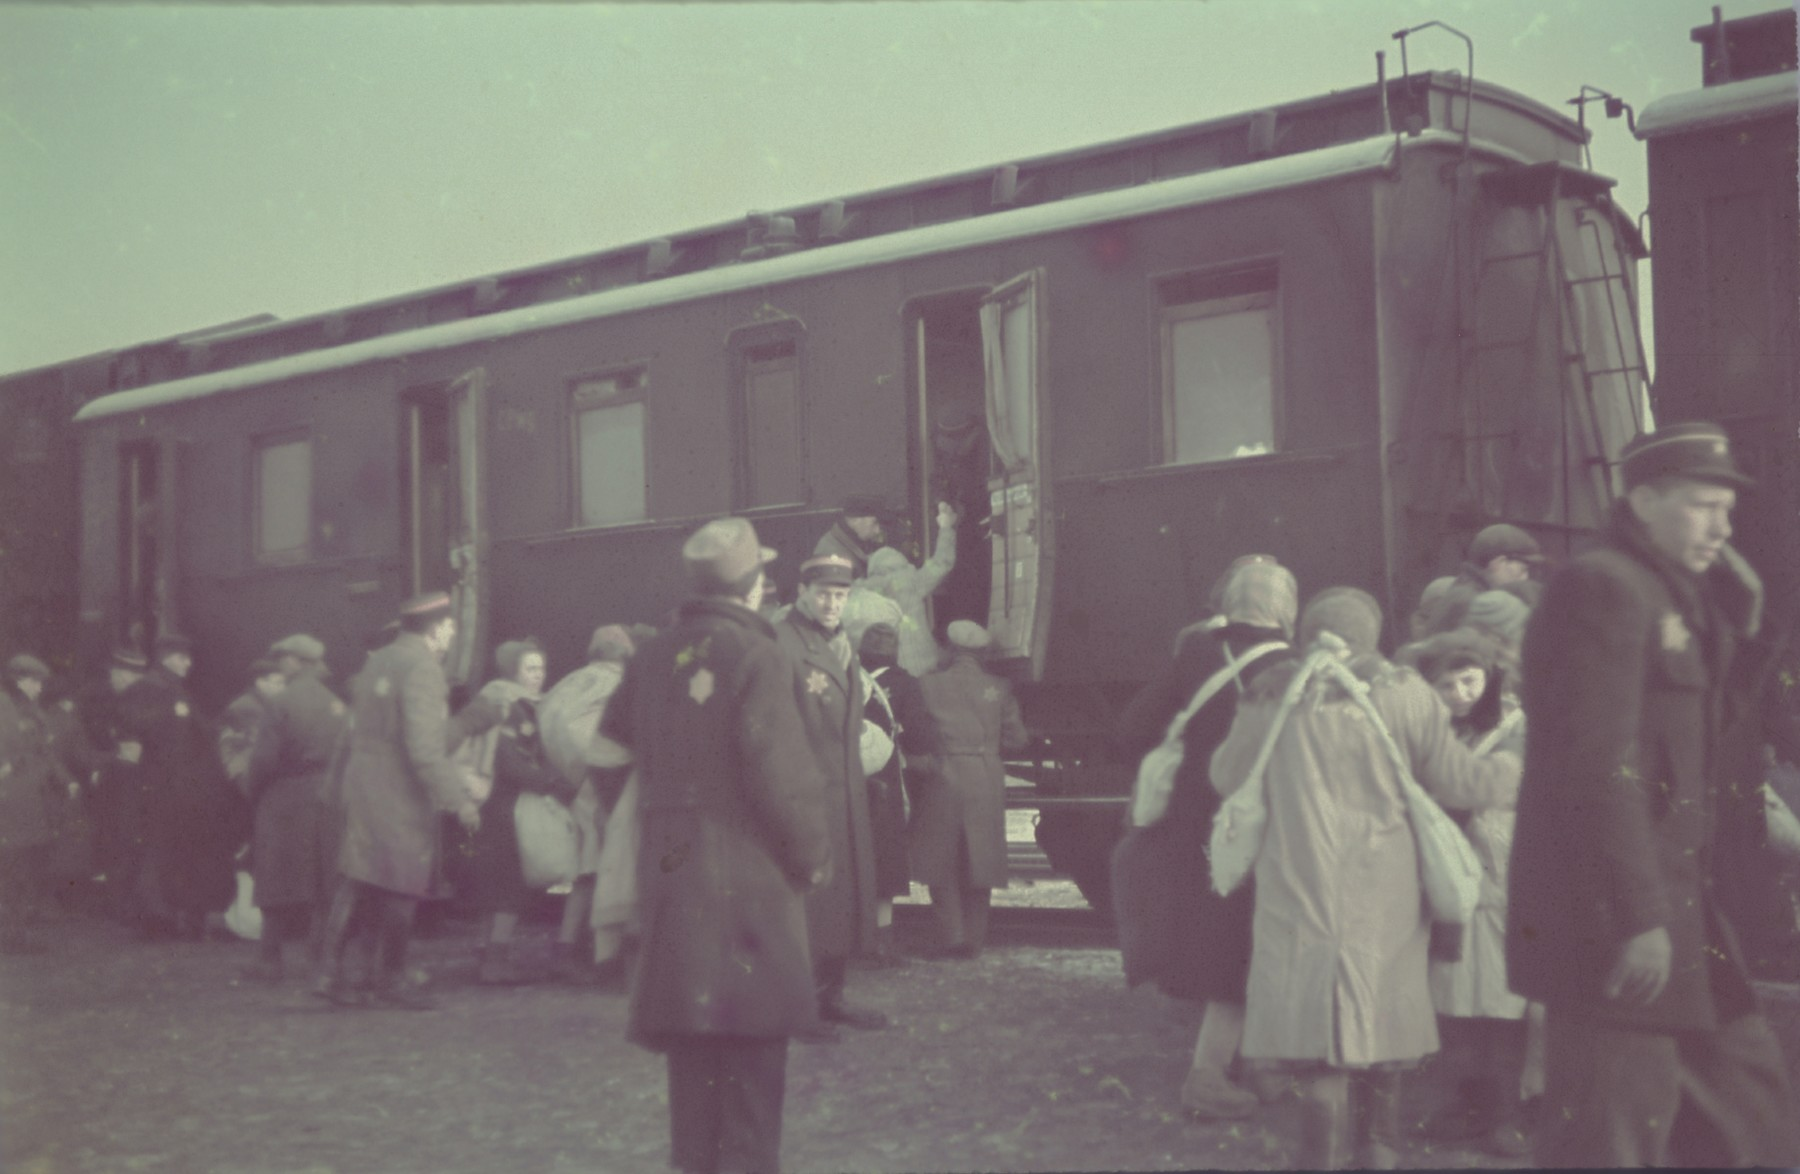 """Jews board a passenger train during a deportation action in the Lodz ghetto.  Original German caption: """"Judenaussiedlung"""" (Resettlement of Jews), April 1942, #131."""